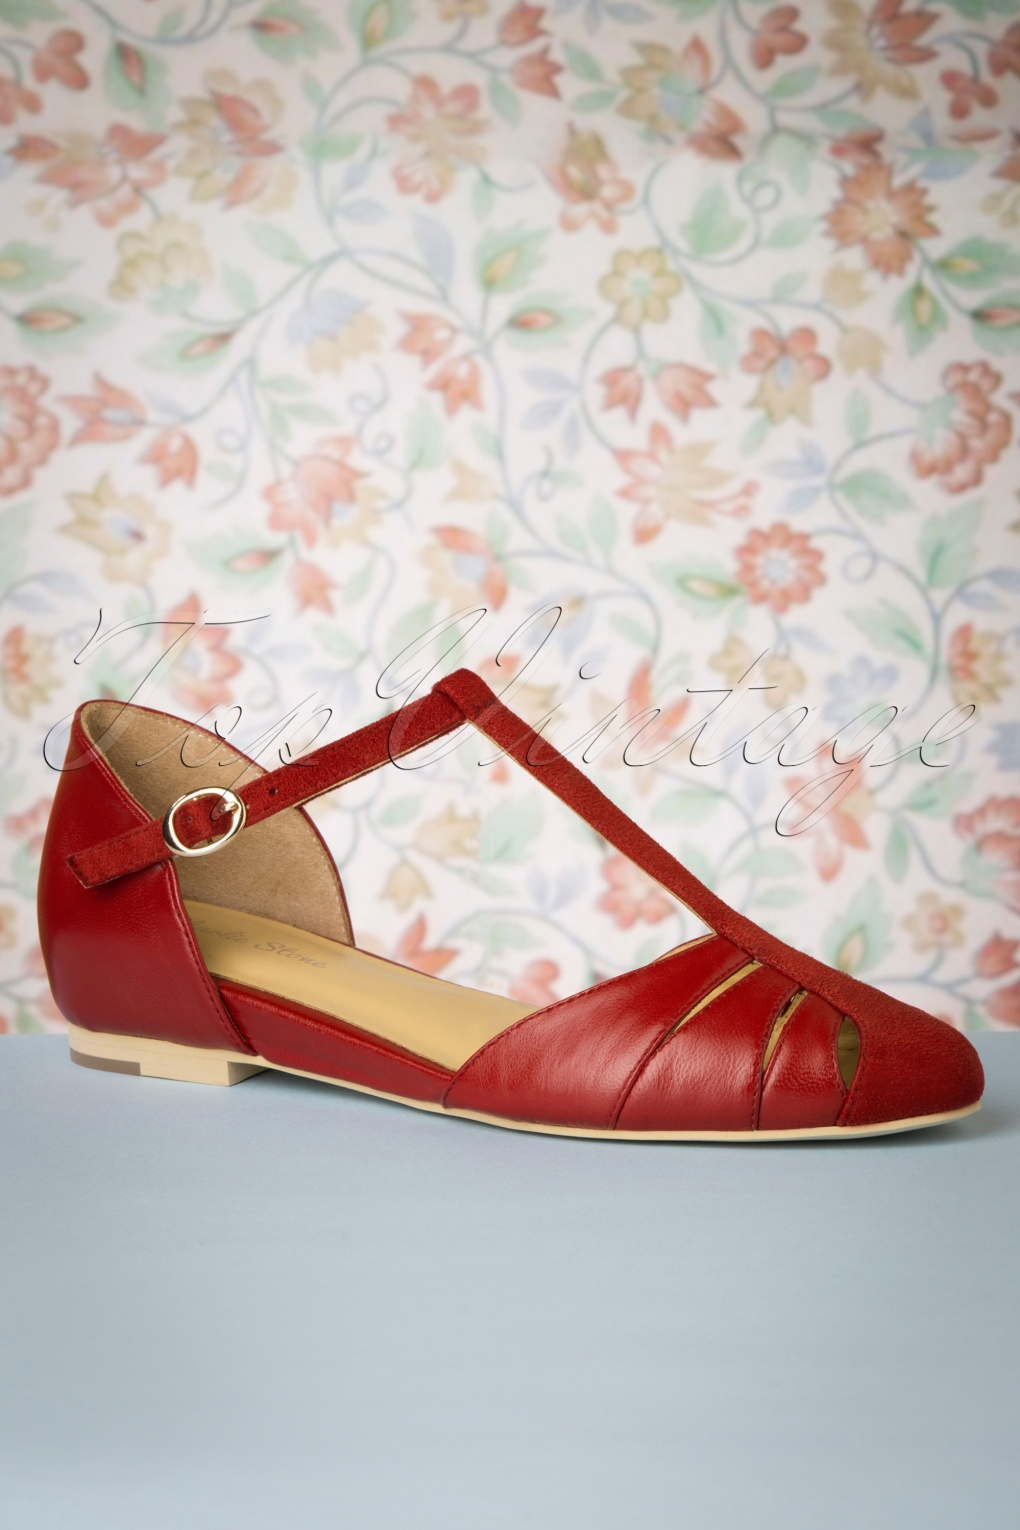 1950s Shoe Styles: Heels, Flats, Sandals, Saddles Shoes 50s Toscana T-Strap Flats in Red £102.43 AT vintagedancer.com